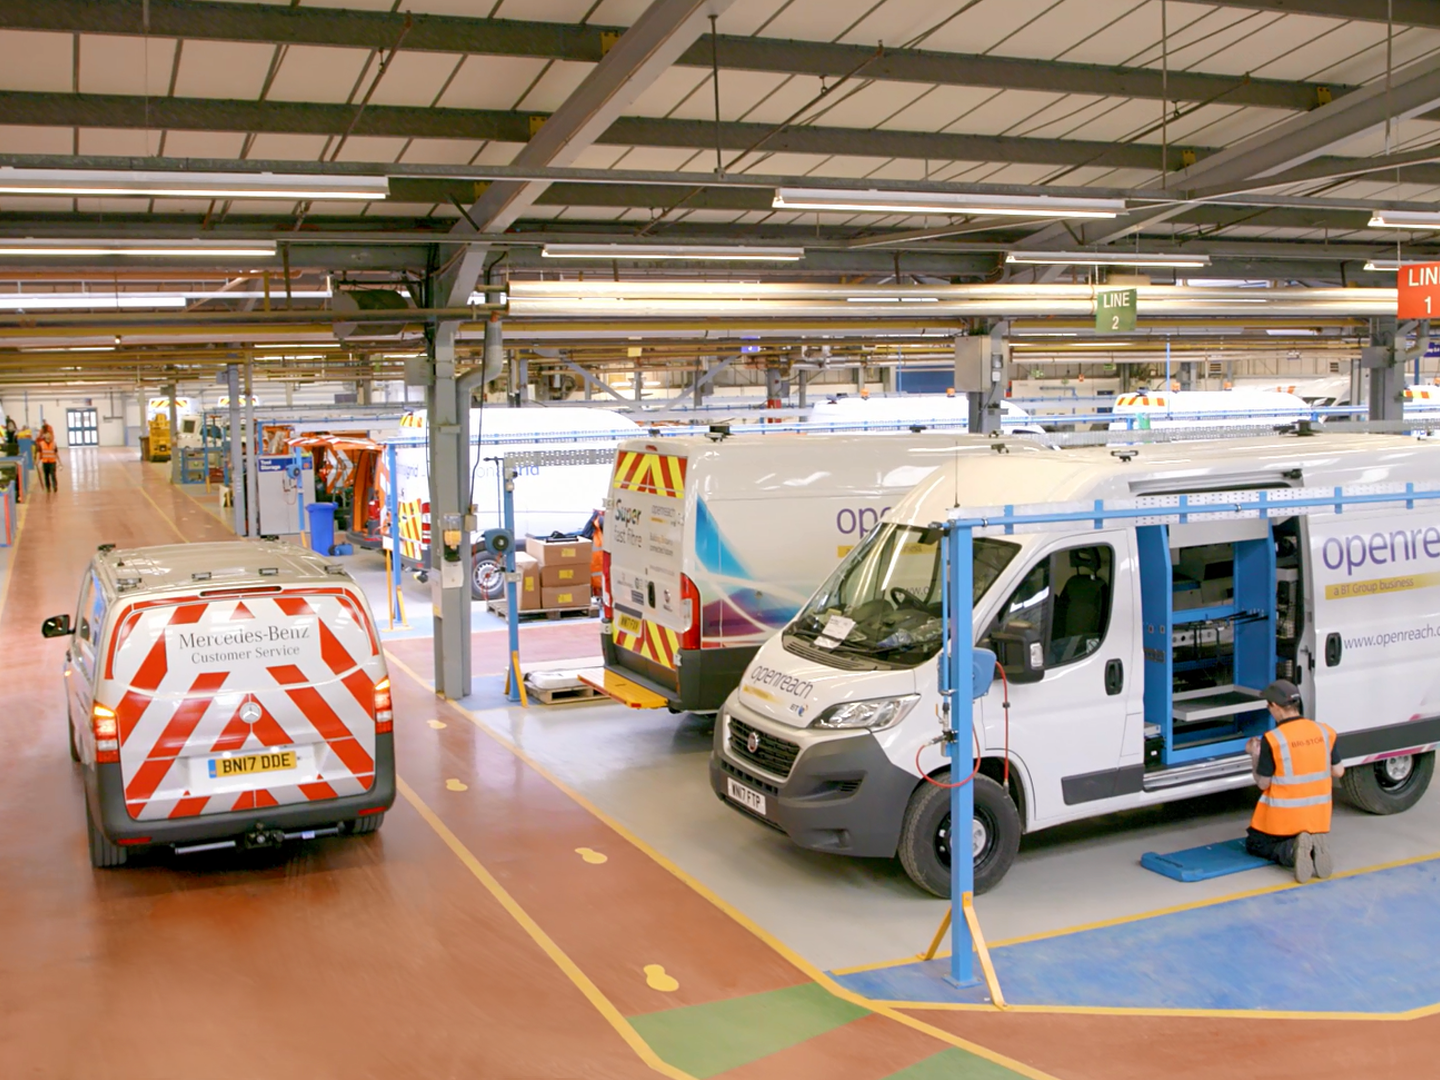 THE CLIENT - Bri-Stor Systems Ltd is the UK's largest manufacturer of light commercial vehicle conversions and van storage systems. They have been supplying the UK market for over 35 years and pride themselves on delivering a high quality product, on time to the agreed specification.